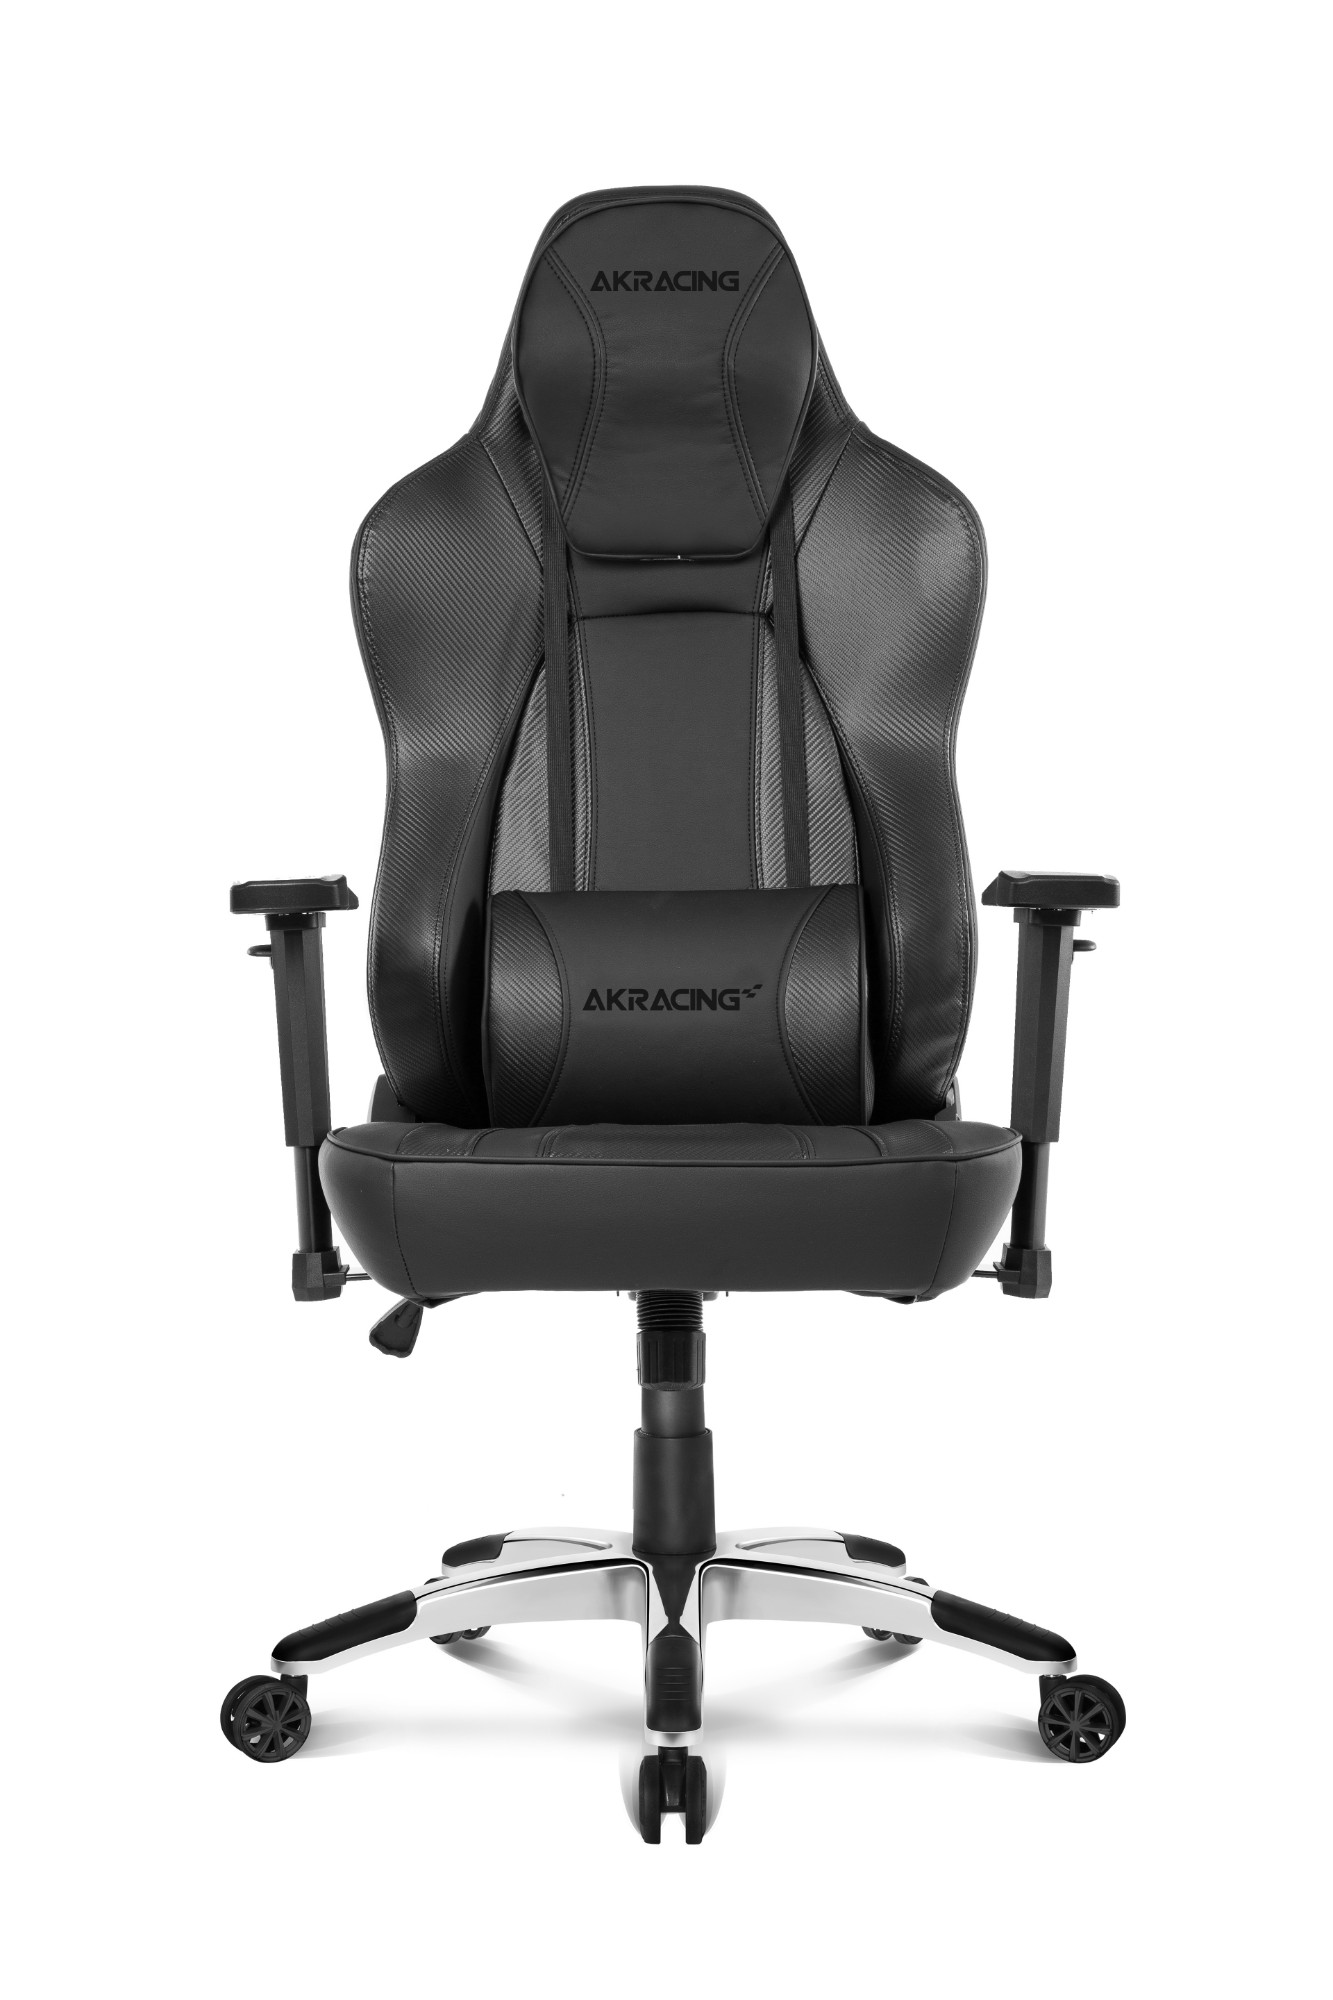 AKRacing Obsidian office/computer chair Padded seat Padded backrest